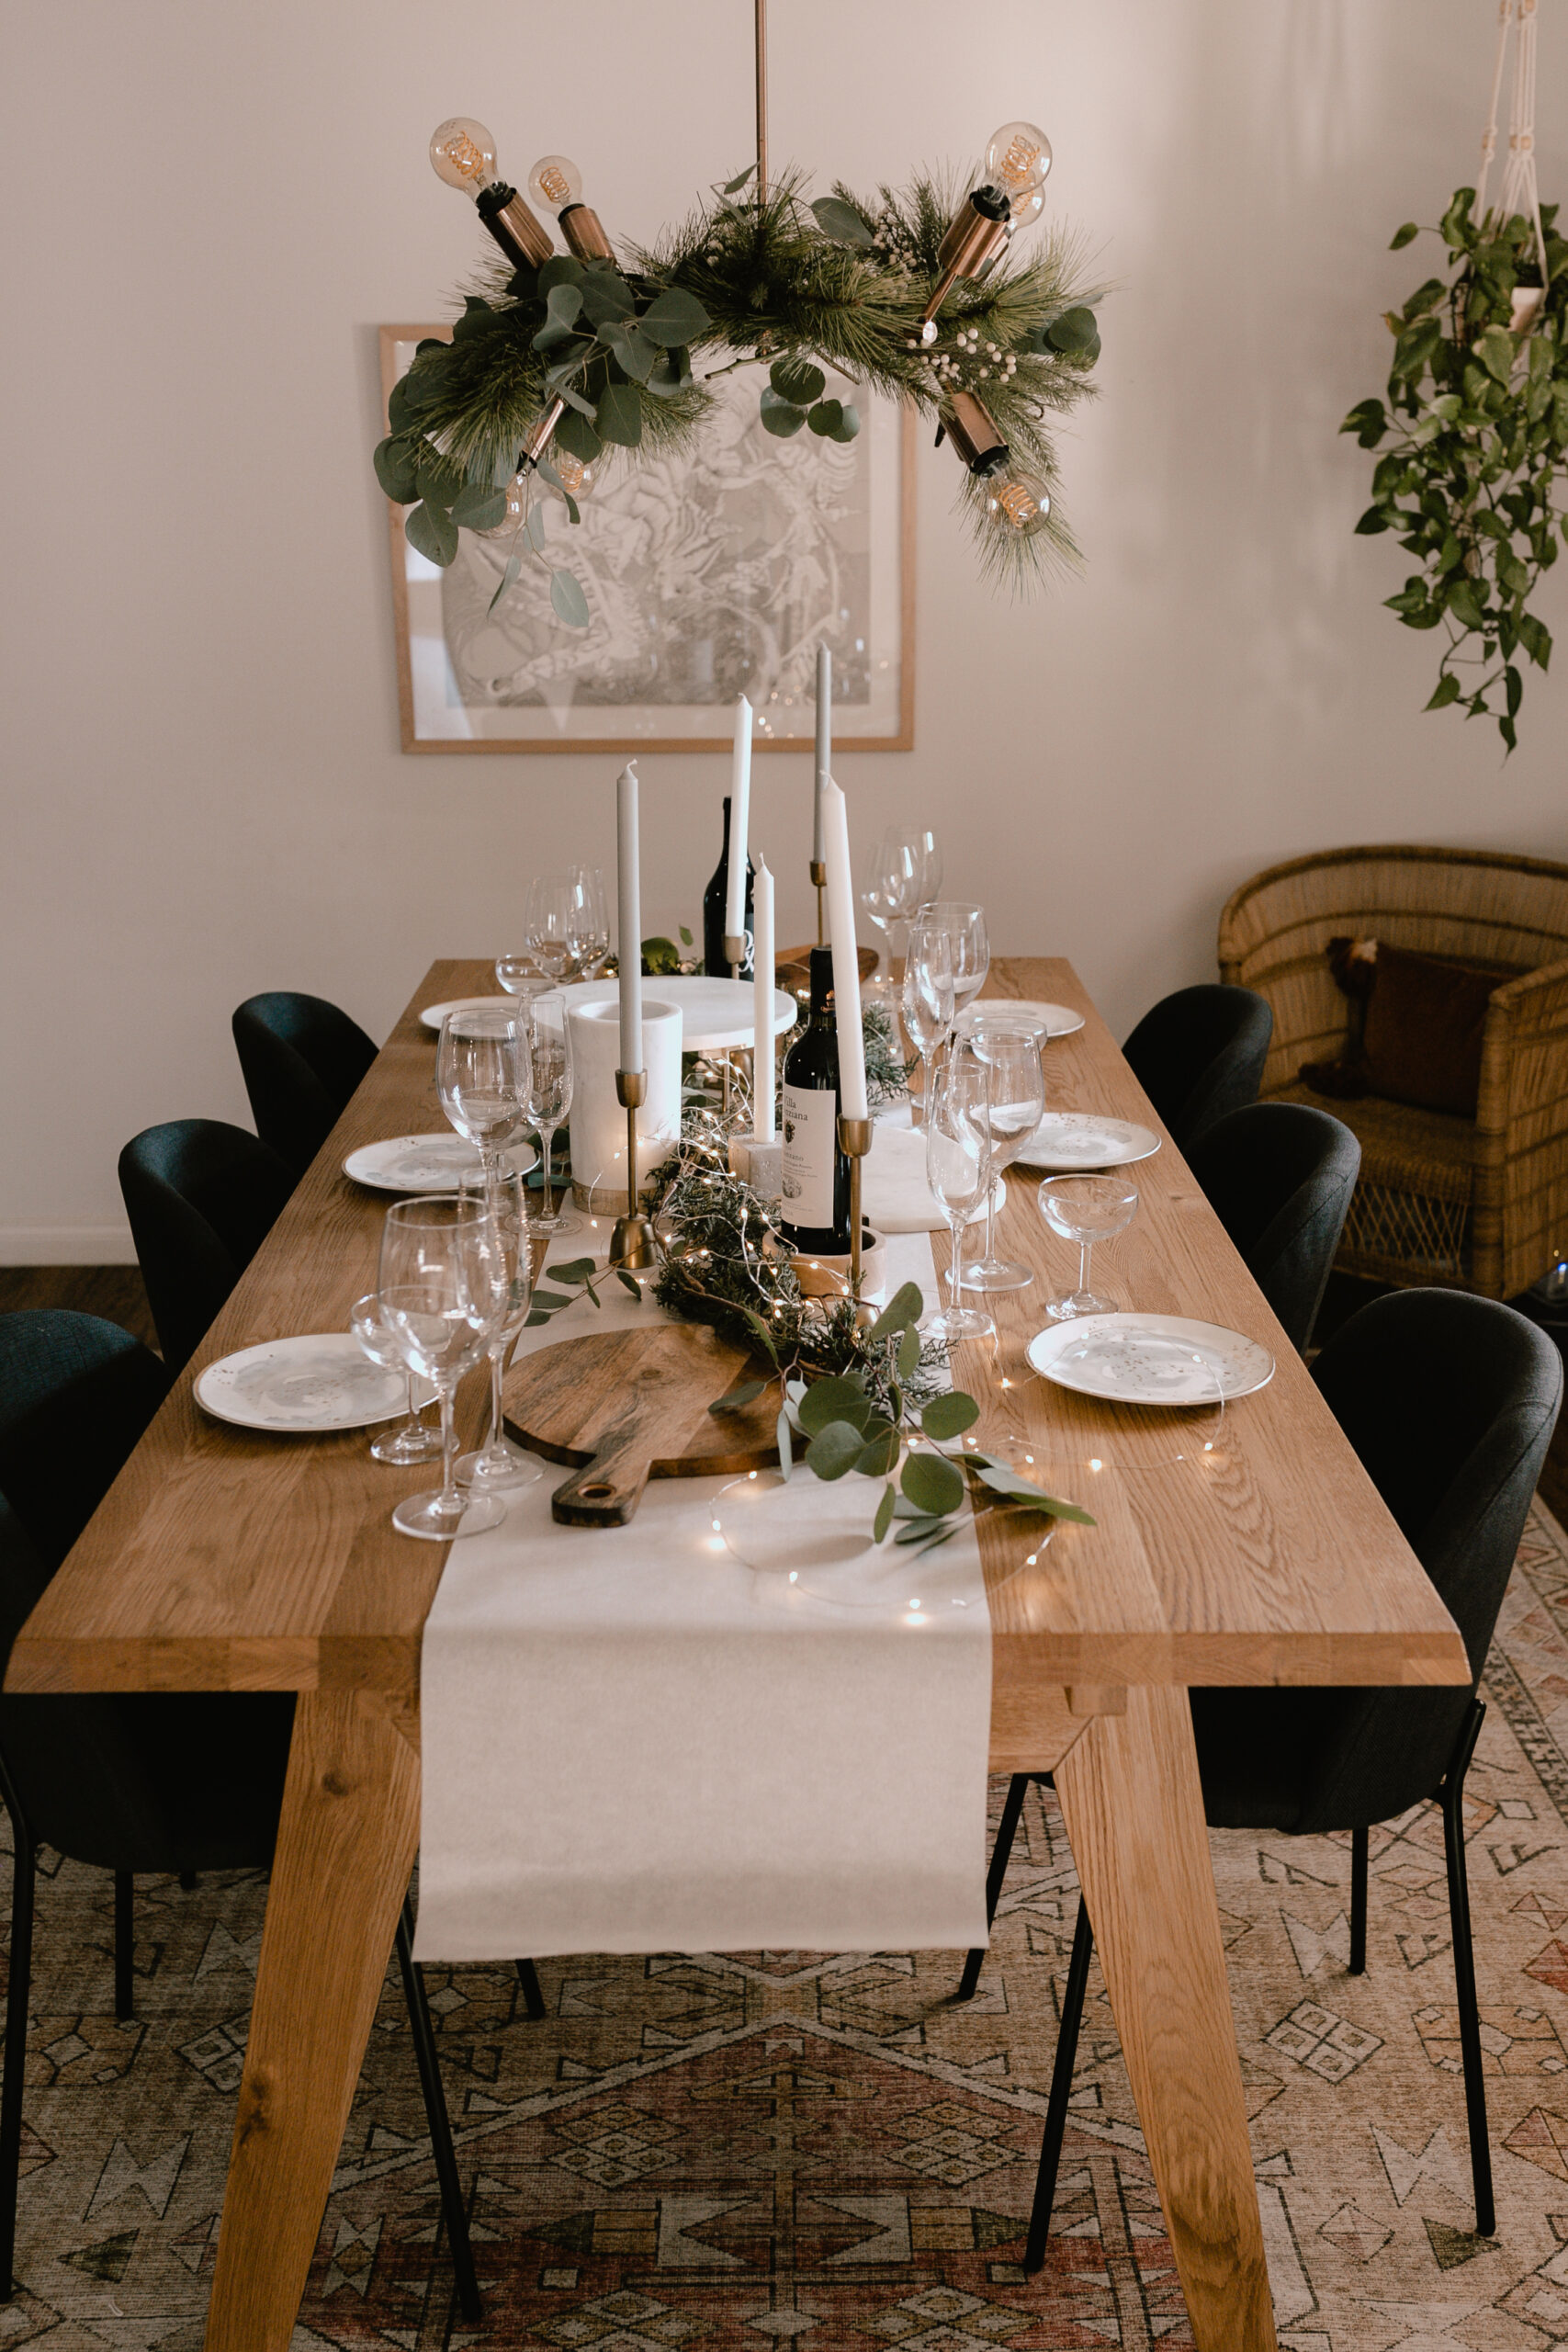 setting the table for a simple charcuterie holiday gathering #holidayhostess #hostesswiththemostes #charcuterieboard #christmastime